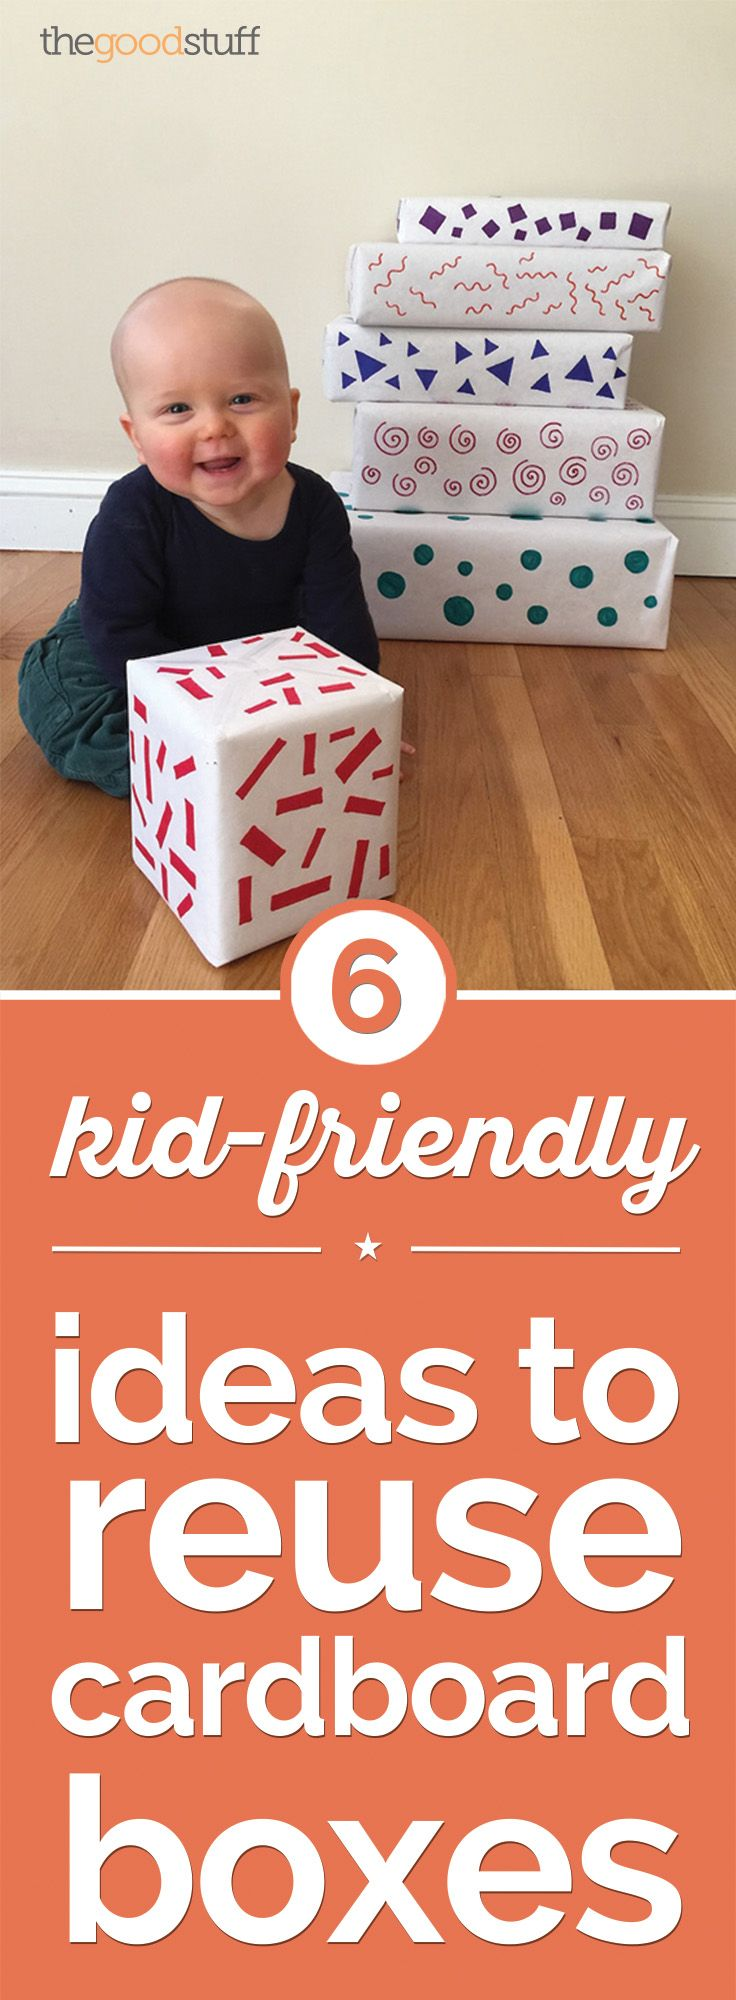 Repurpose cardboard boxes to make fun and unique toys for the little ones!